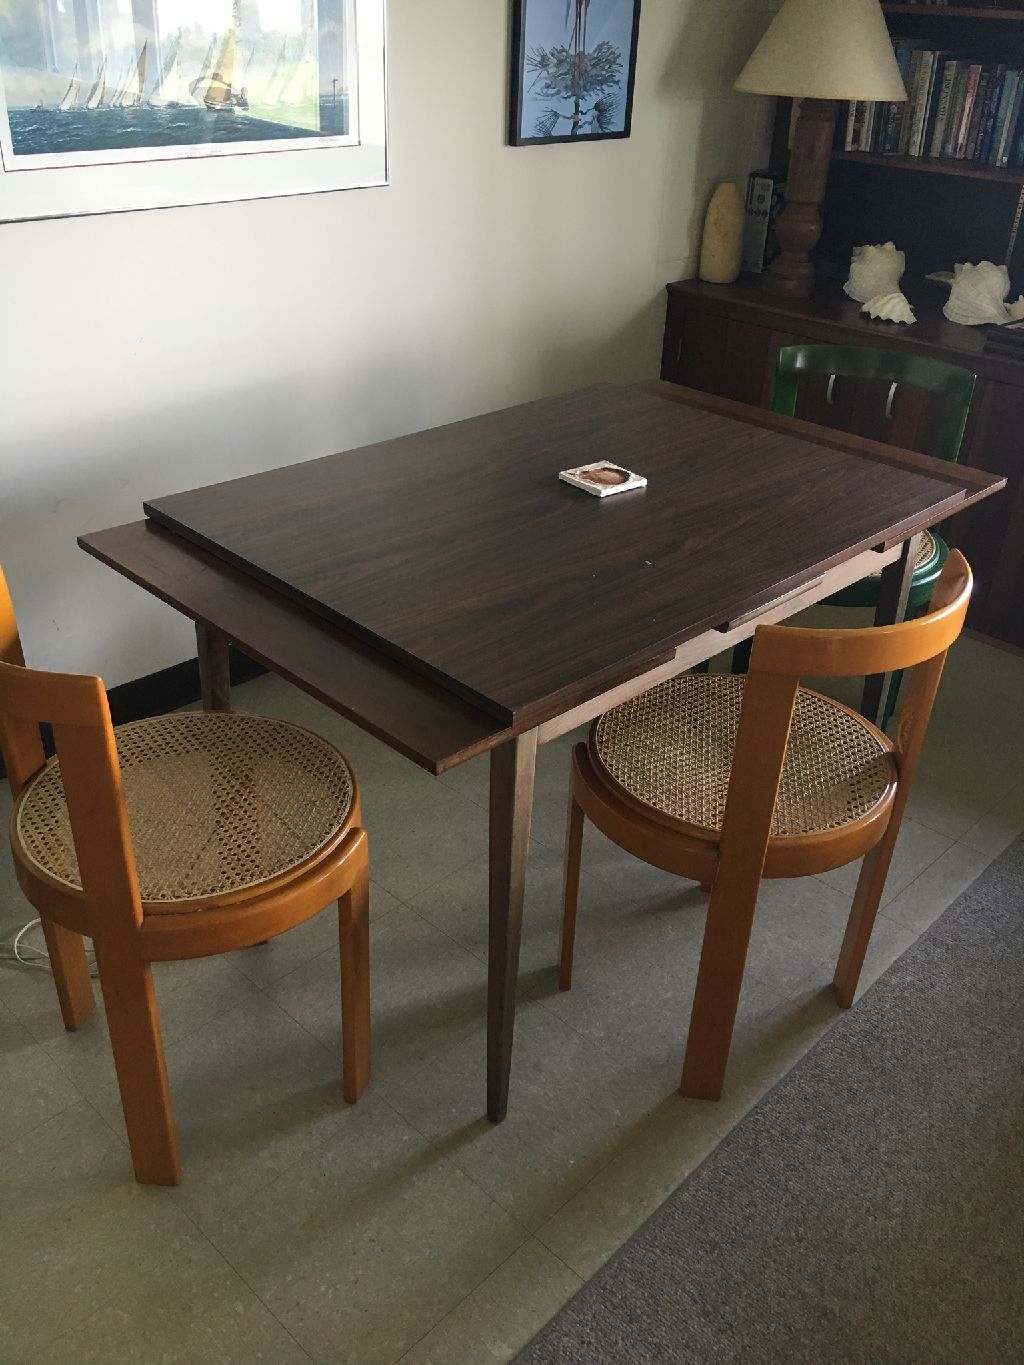 3 chairs + table